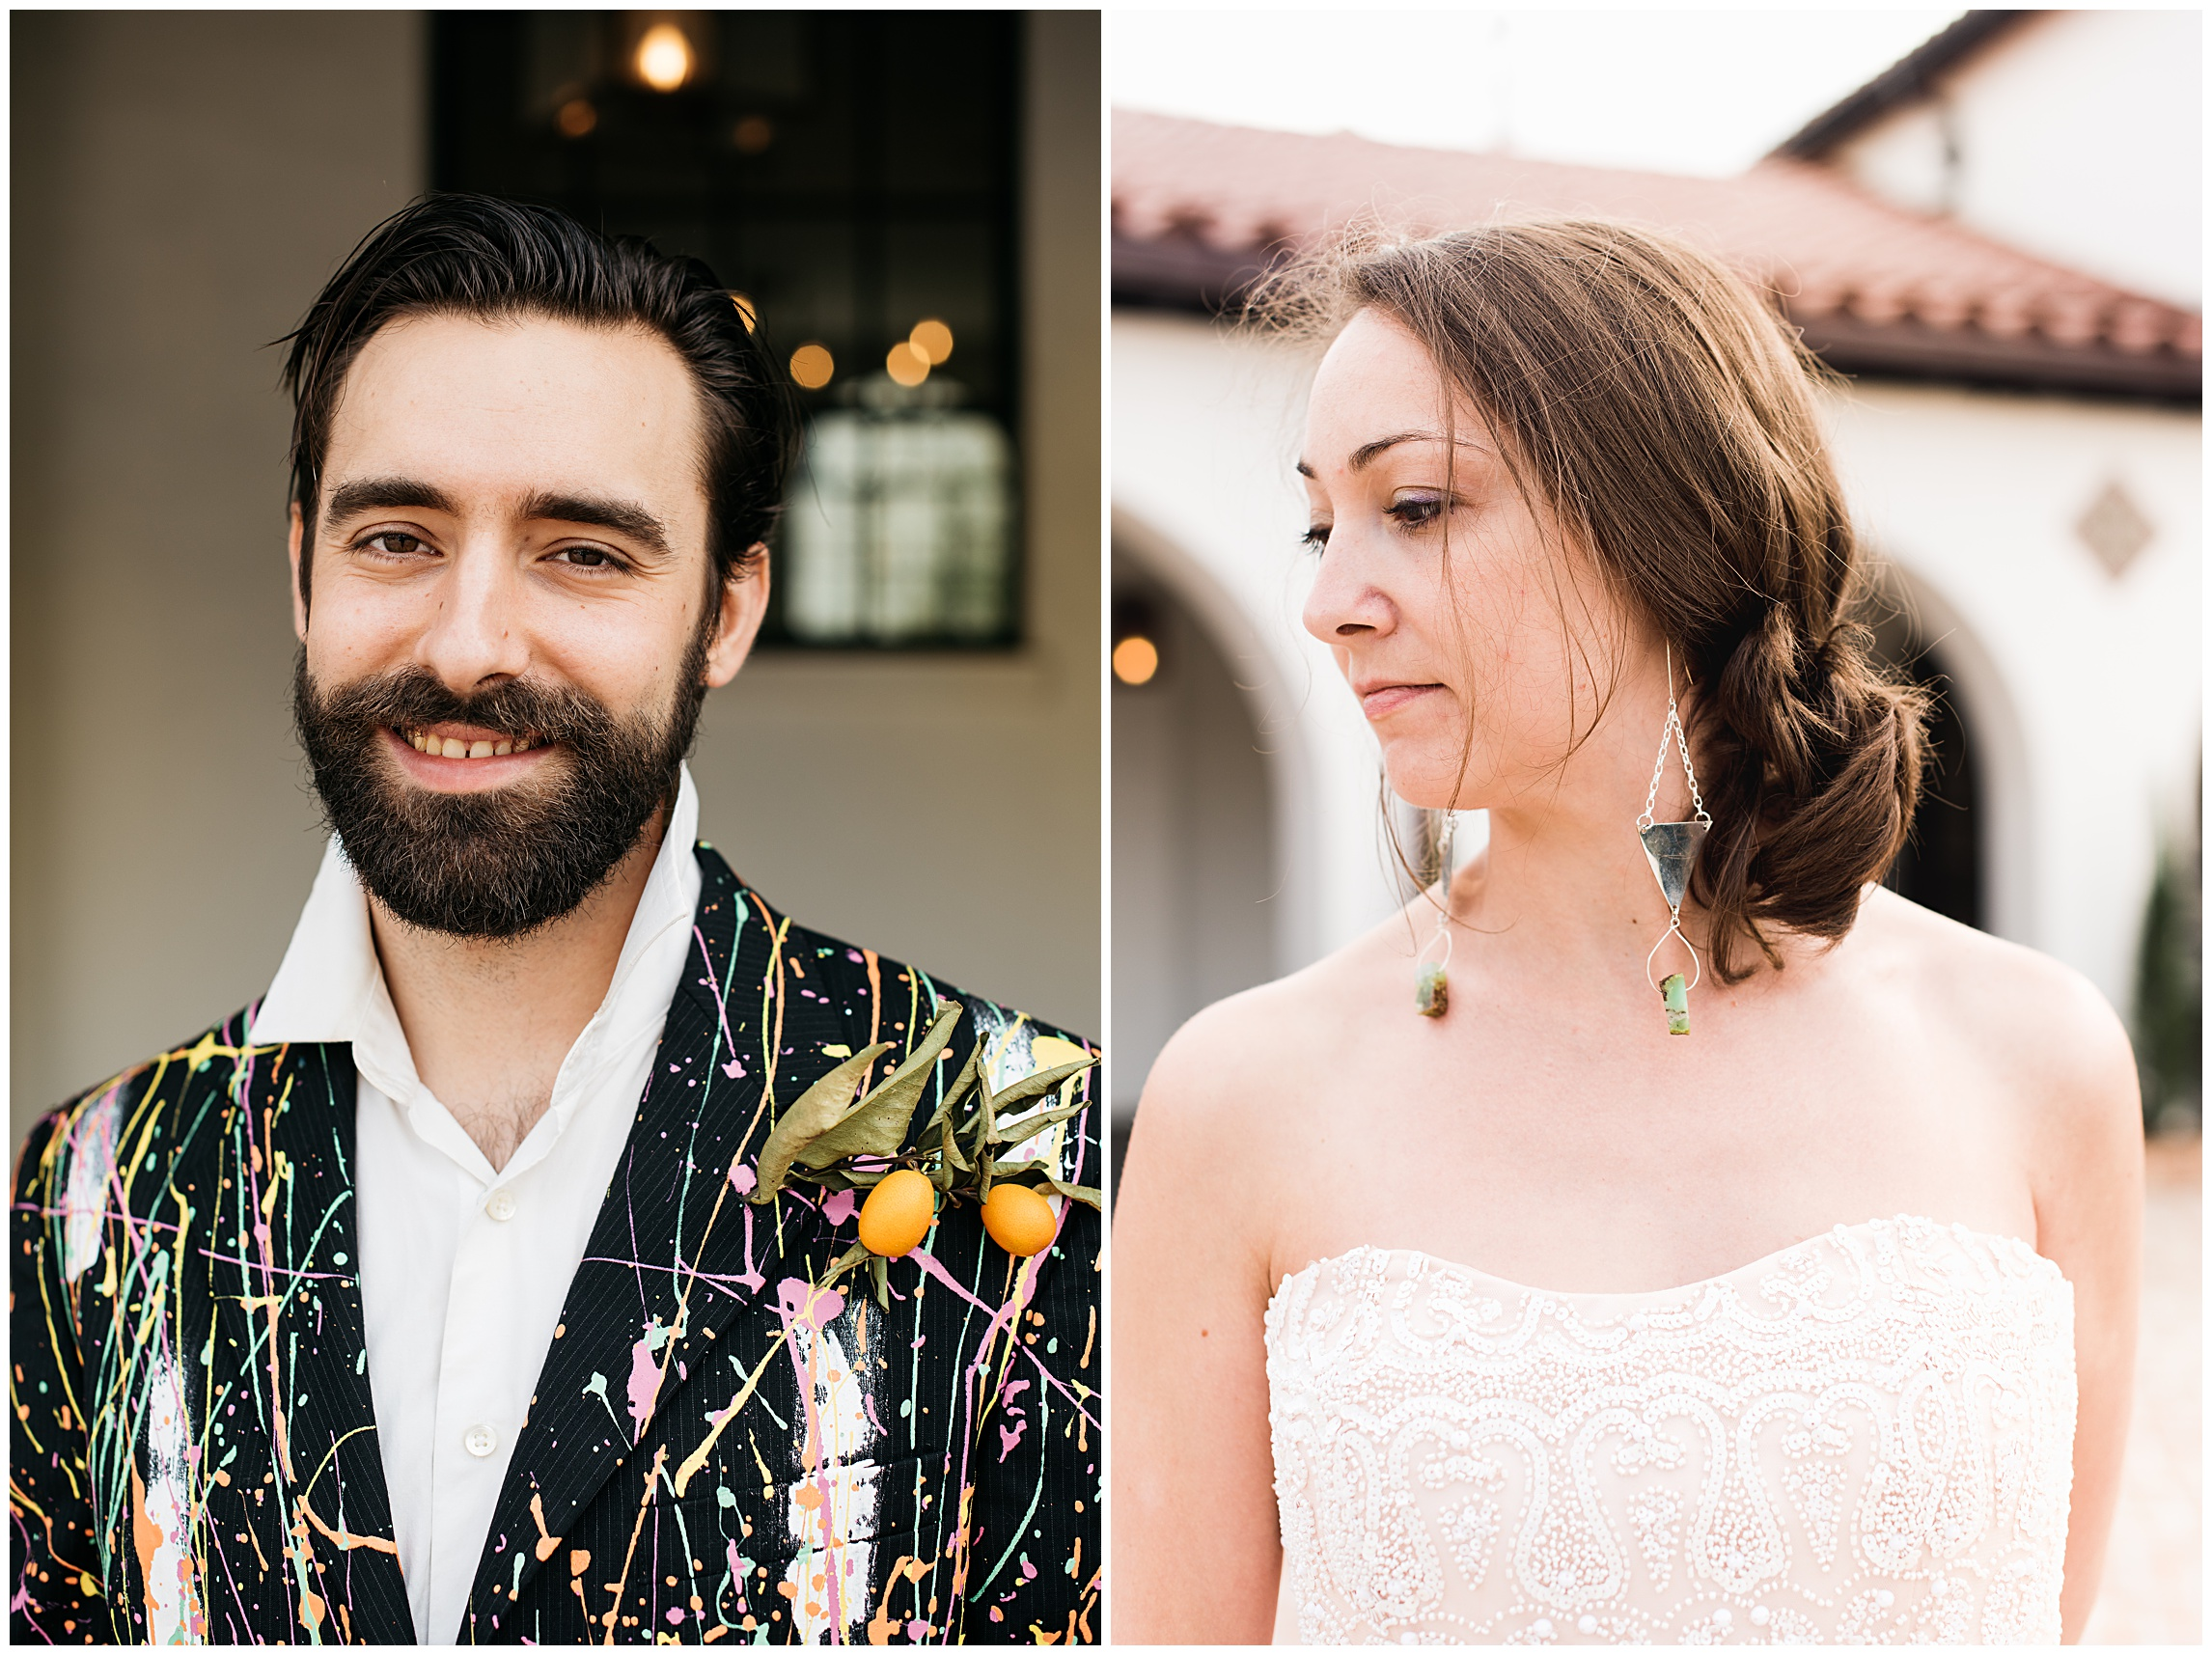 A groom in a colorful artistic blazer and a bride in the warm New Orleans light. Blazer by Charles Anderson of 1 of 1 Blazers. Handmade earrings by Brynna Mollahan of Lunar Fringe Outpost. Film photography by Sonja Salzburg of Sonja K Photography.